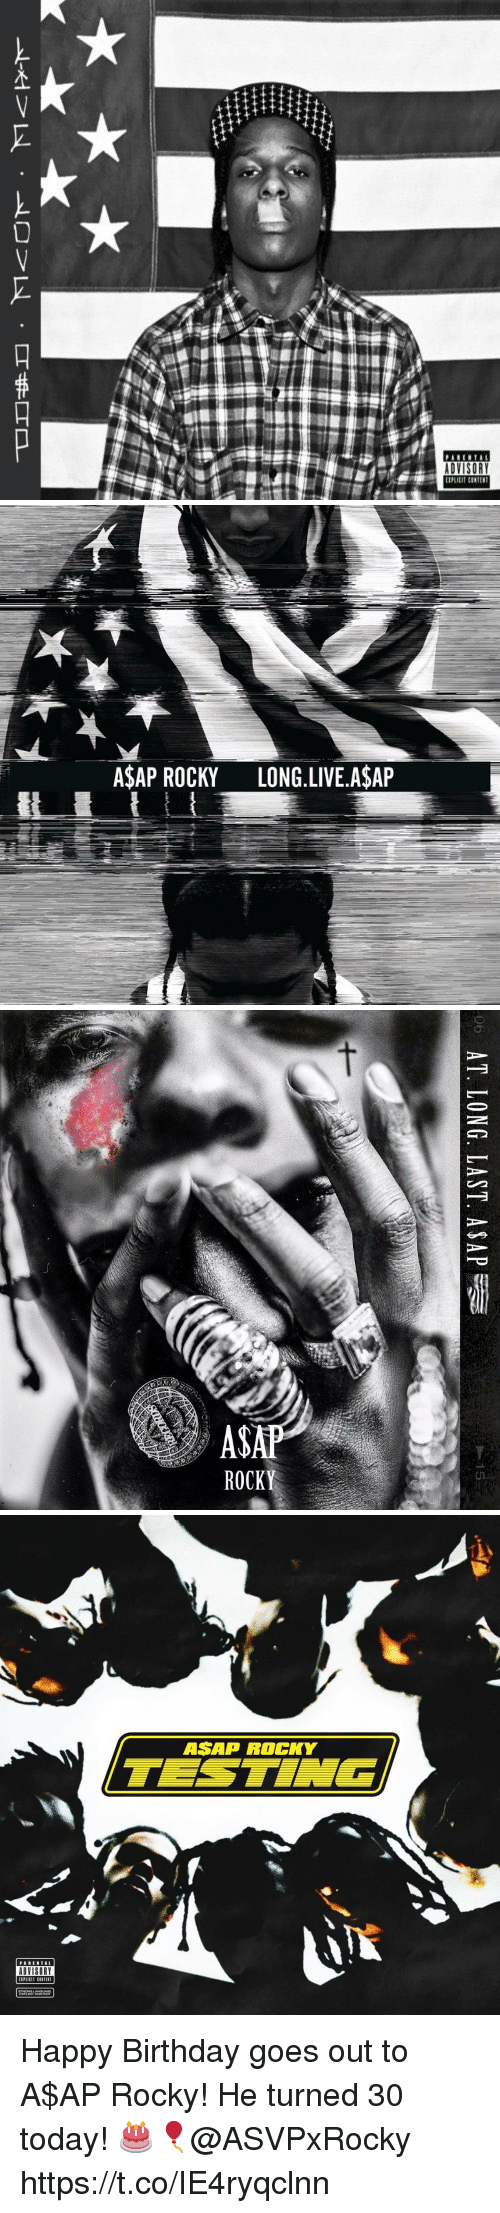 Asap Rocky: A$AP ROCKY LONG.LIVE A$AP   AT. LONG, LAST, ASAP   ASAP ROCKY  PARENTAL  ADVISORY Happy Birthday goes out to A$AP Rocky! He turned 30 today! 🎂🎈@ASVPxRocky https://t.co/IE4ryqclnn